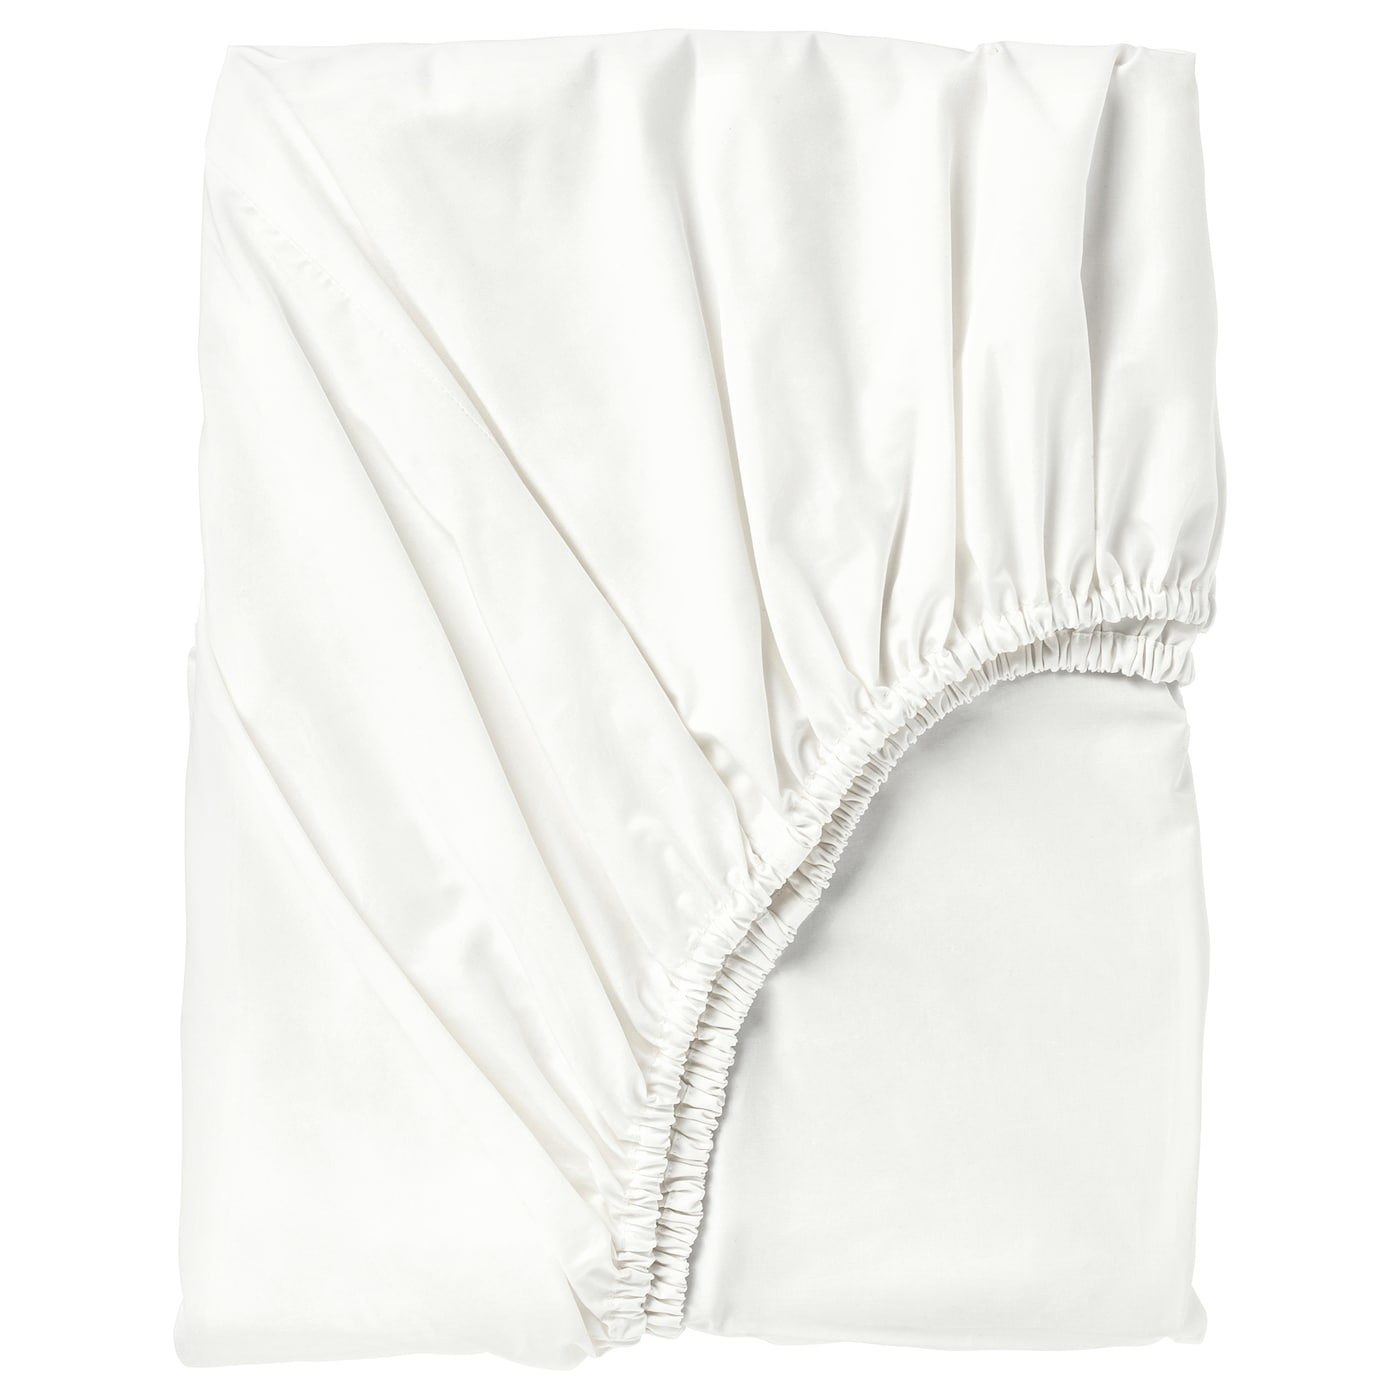 IKEA SÖMNTUTA fitted sheet Made in 100% cotton - a natural and durable material.